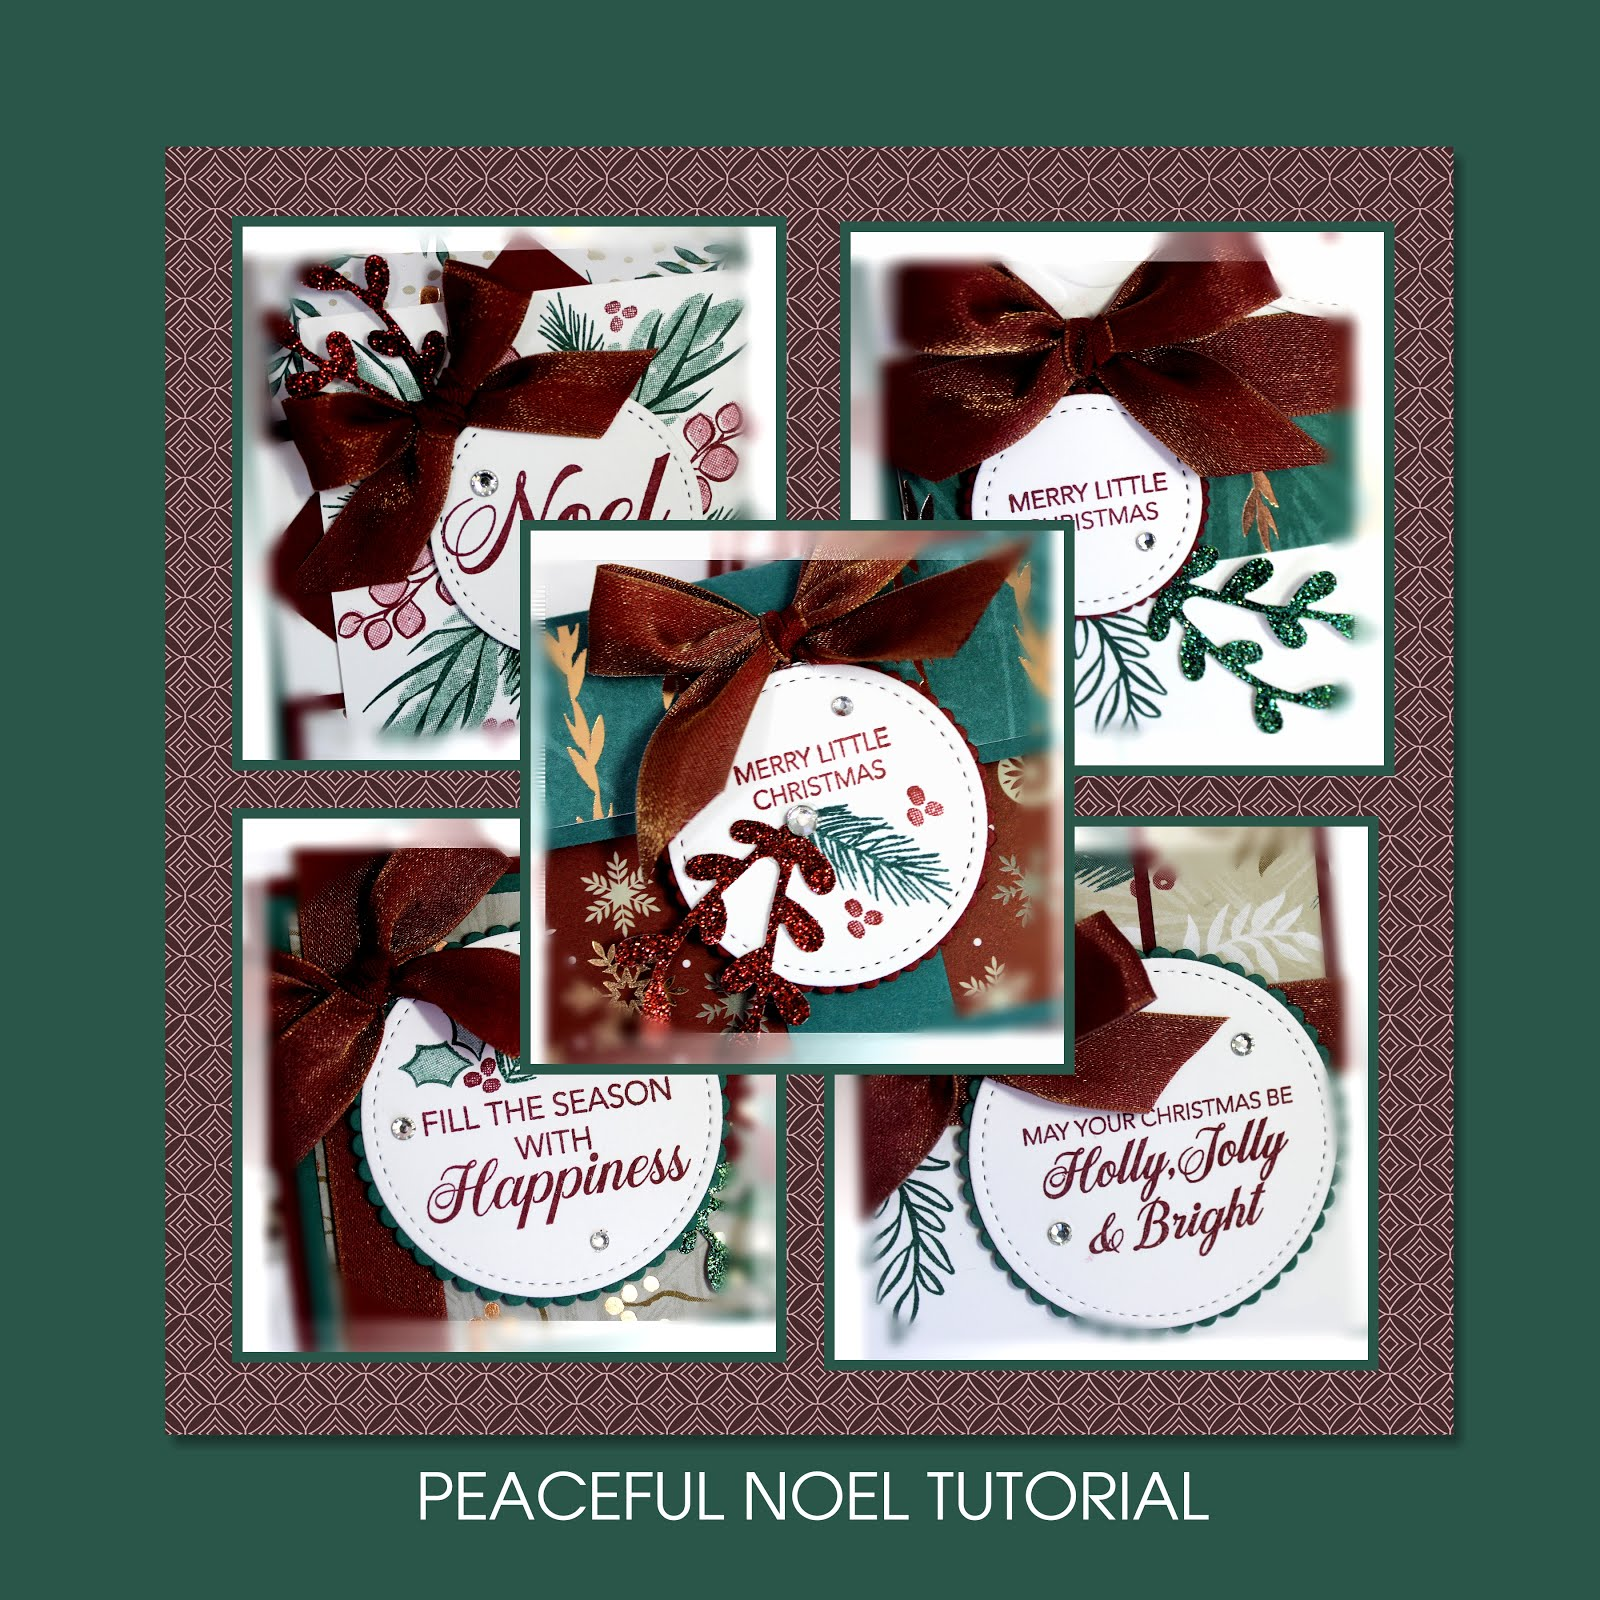 December 2018 Peaceful Noel Tutorial